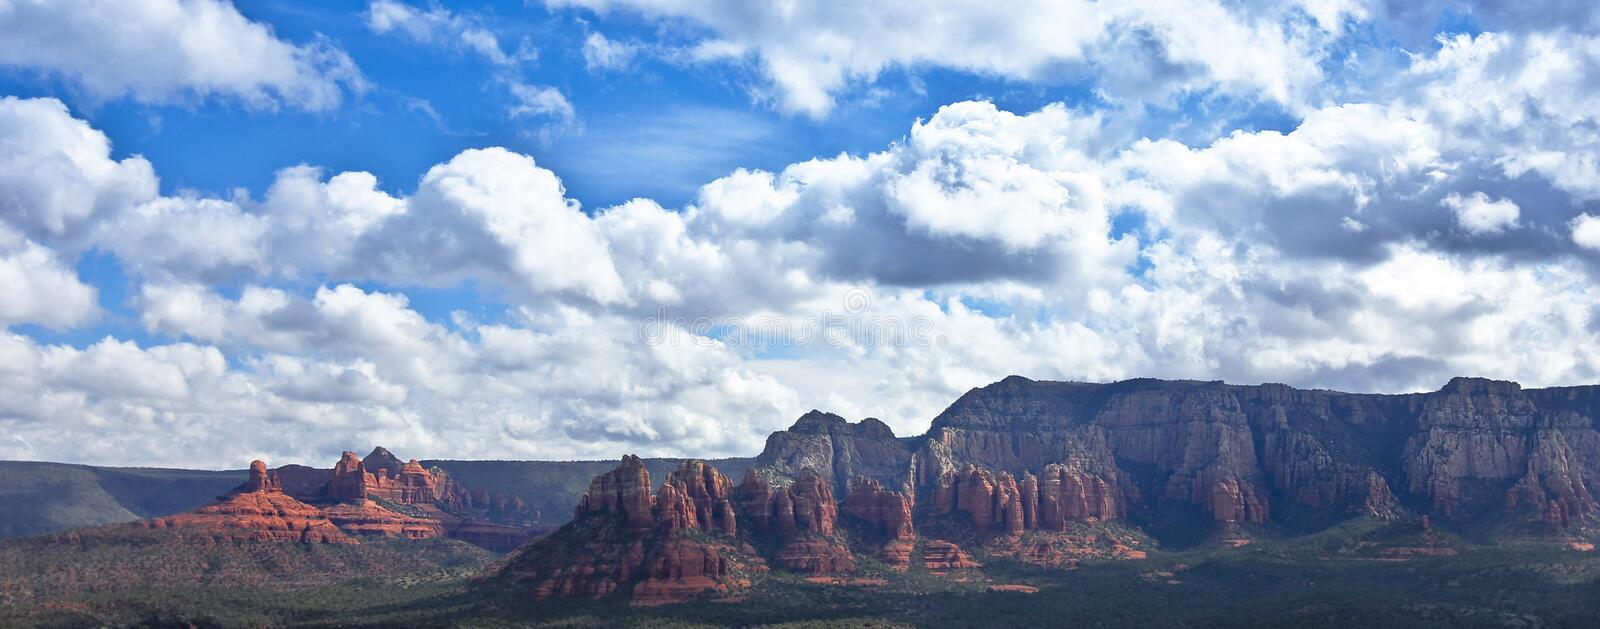 A View Looking East from the Airport Loop, Sedona, AZ, USA stock photos